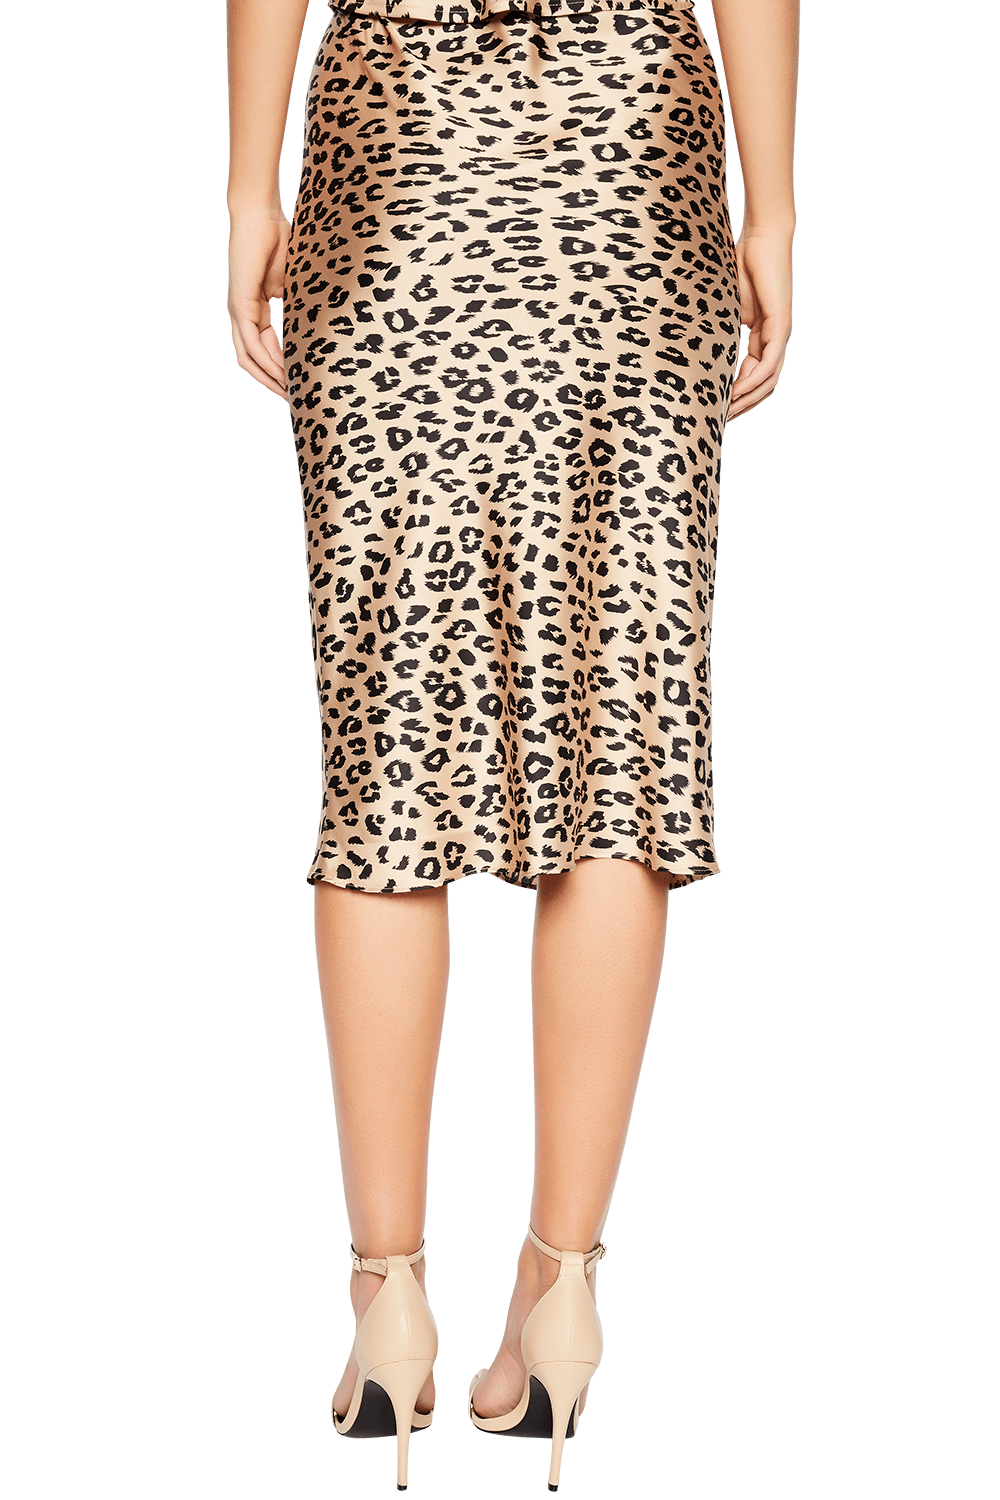 MAYAH LEOPARD SKIRT in colour JET BLACK